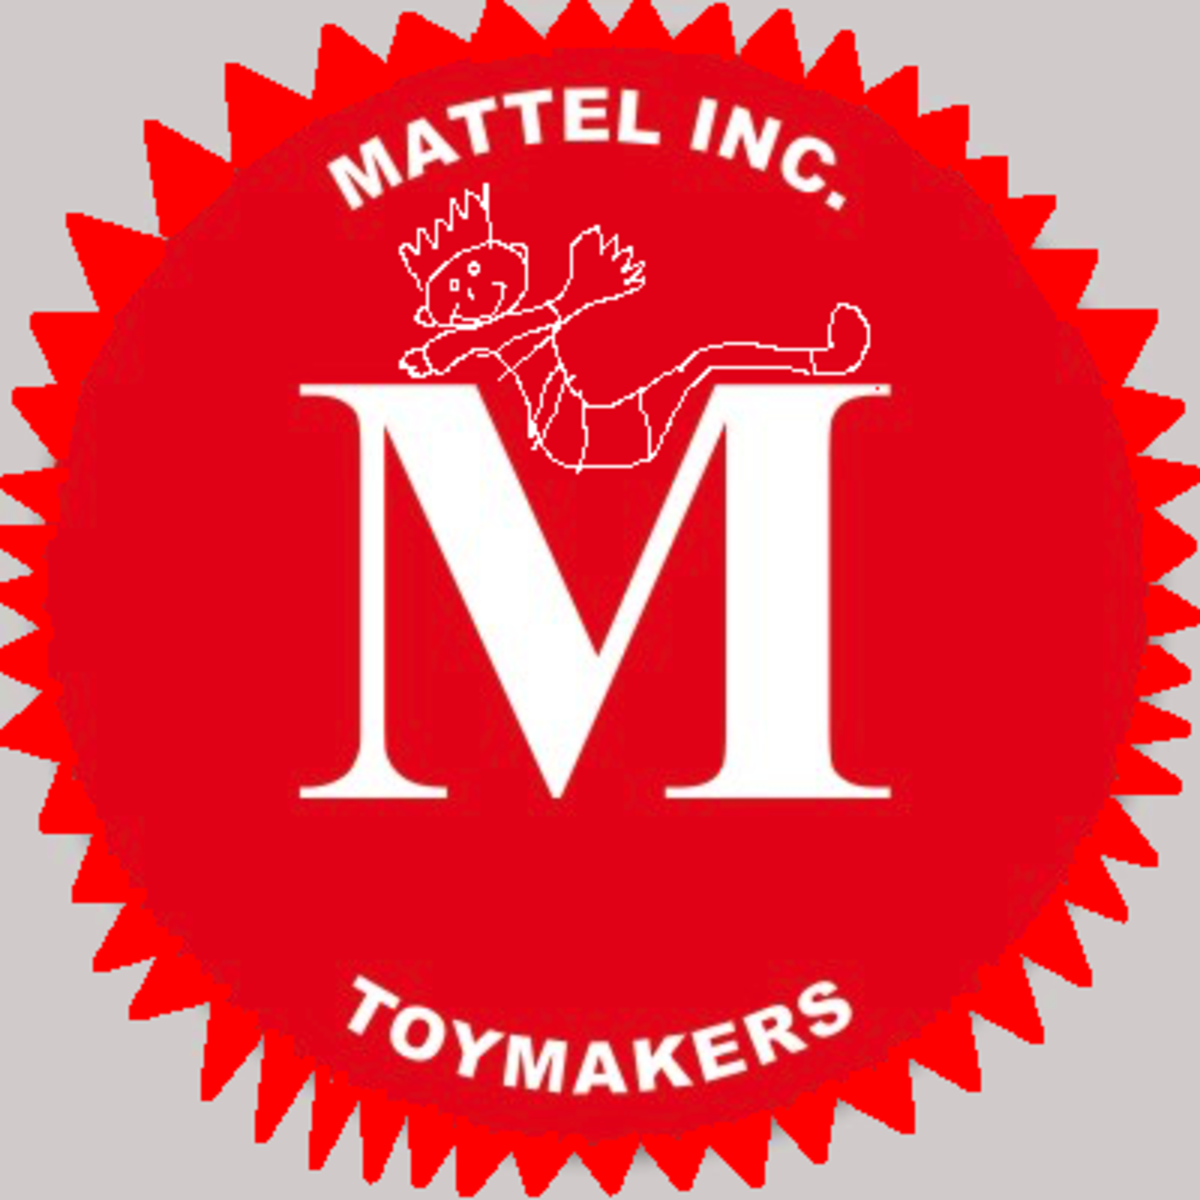 In 1945, Mattel—the official home to Barbie® and Fisher-Price®—was founded.